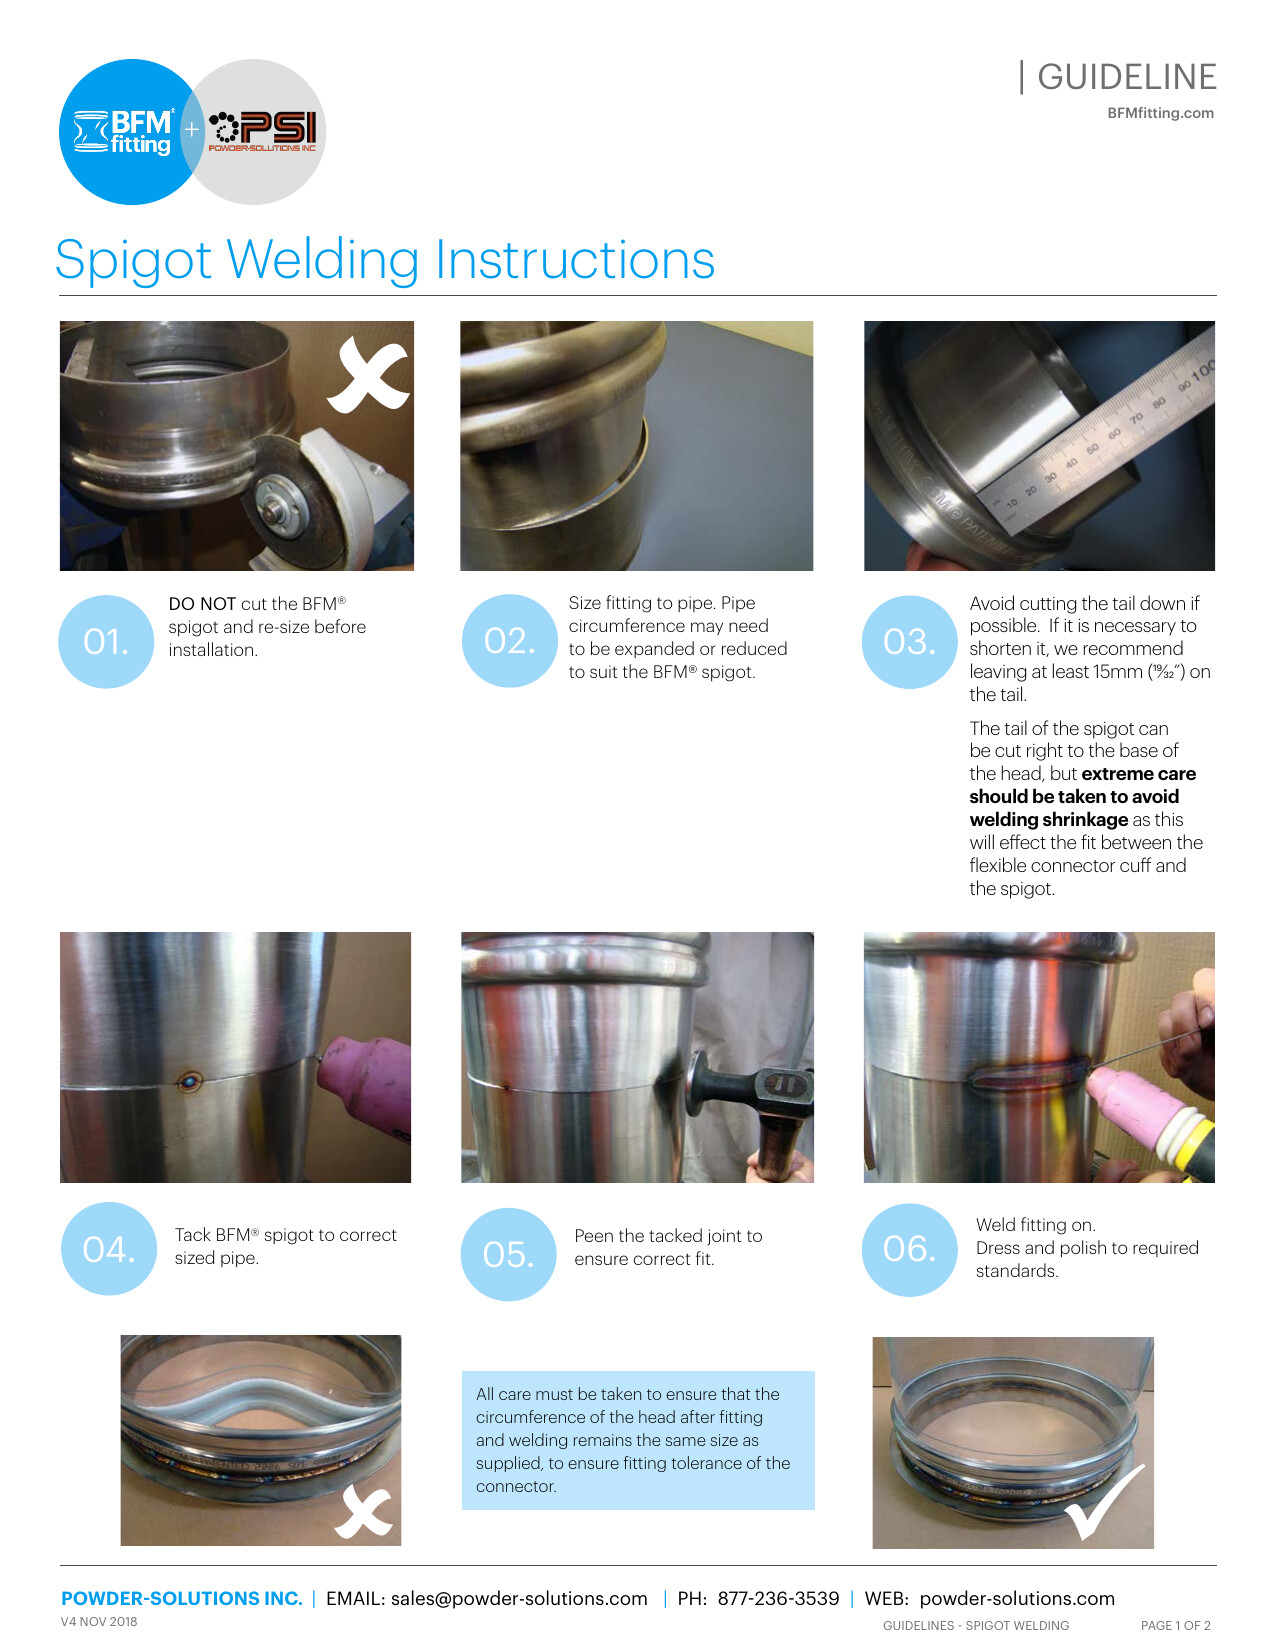 PSI BFM Guidelines - Spigot Welding Instructions